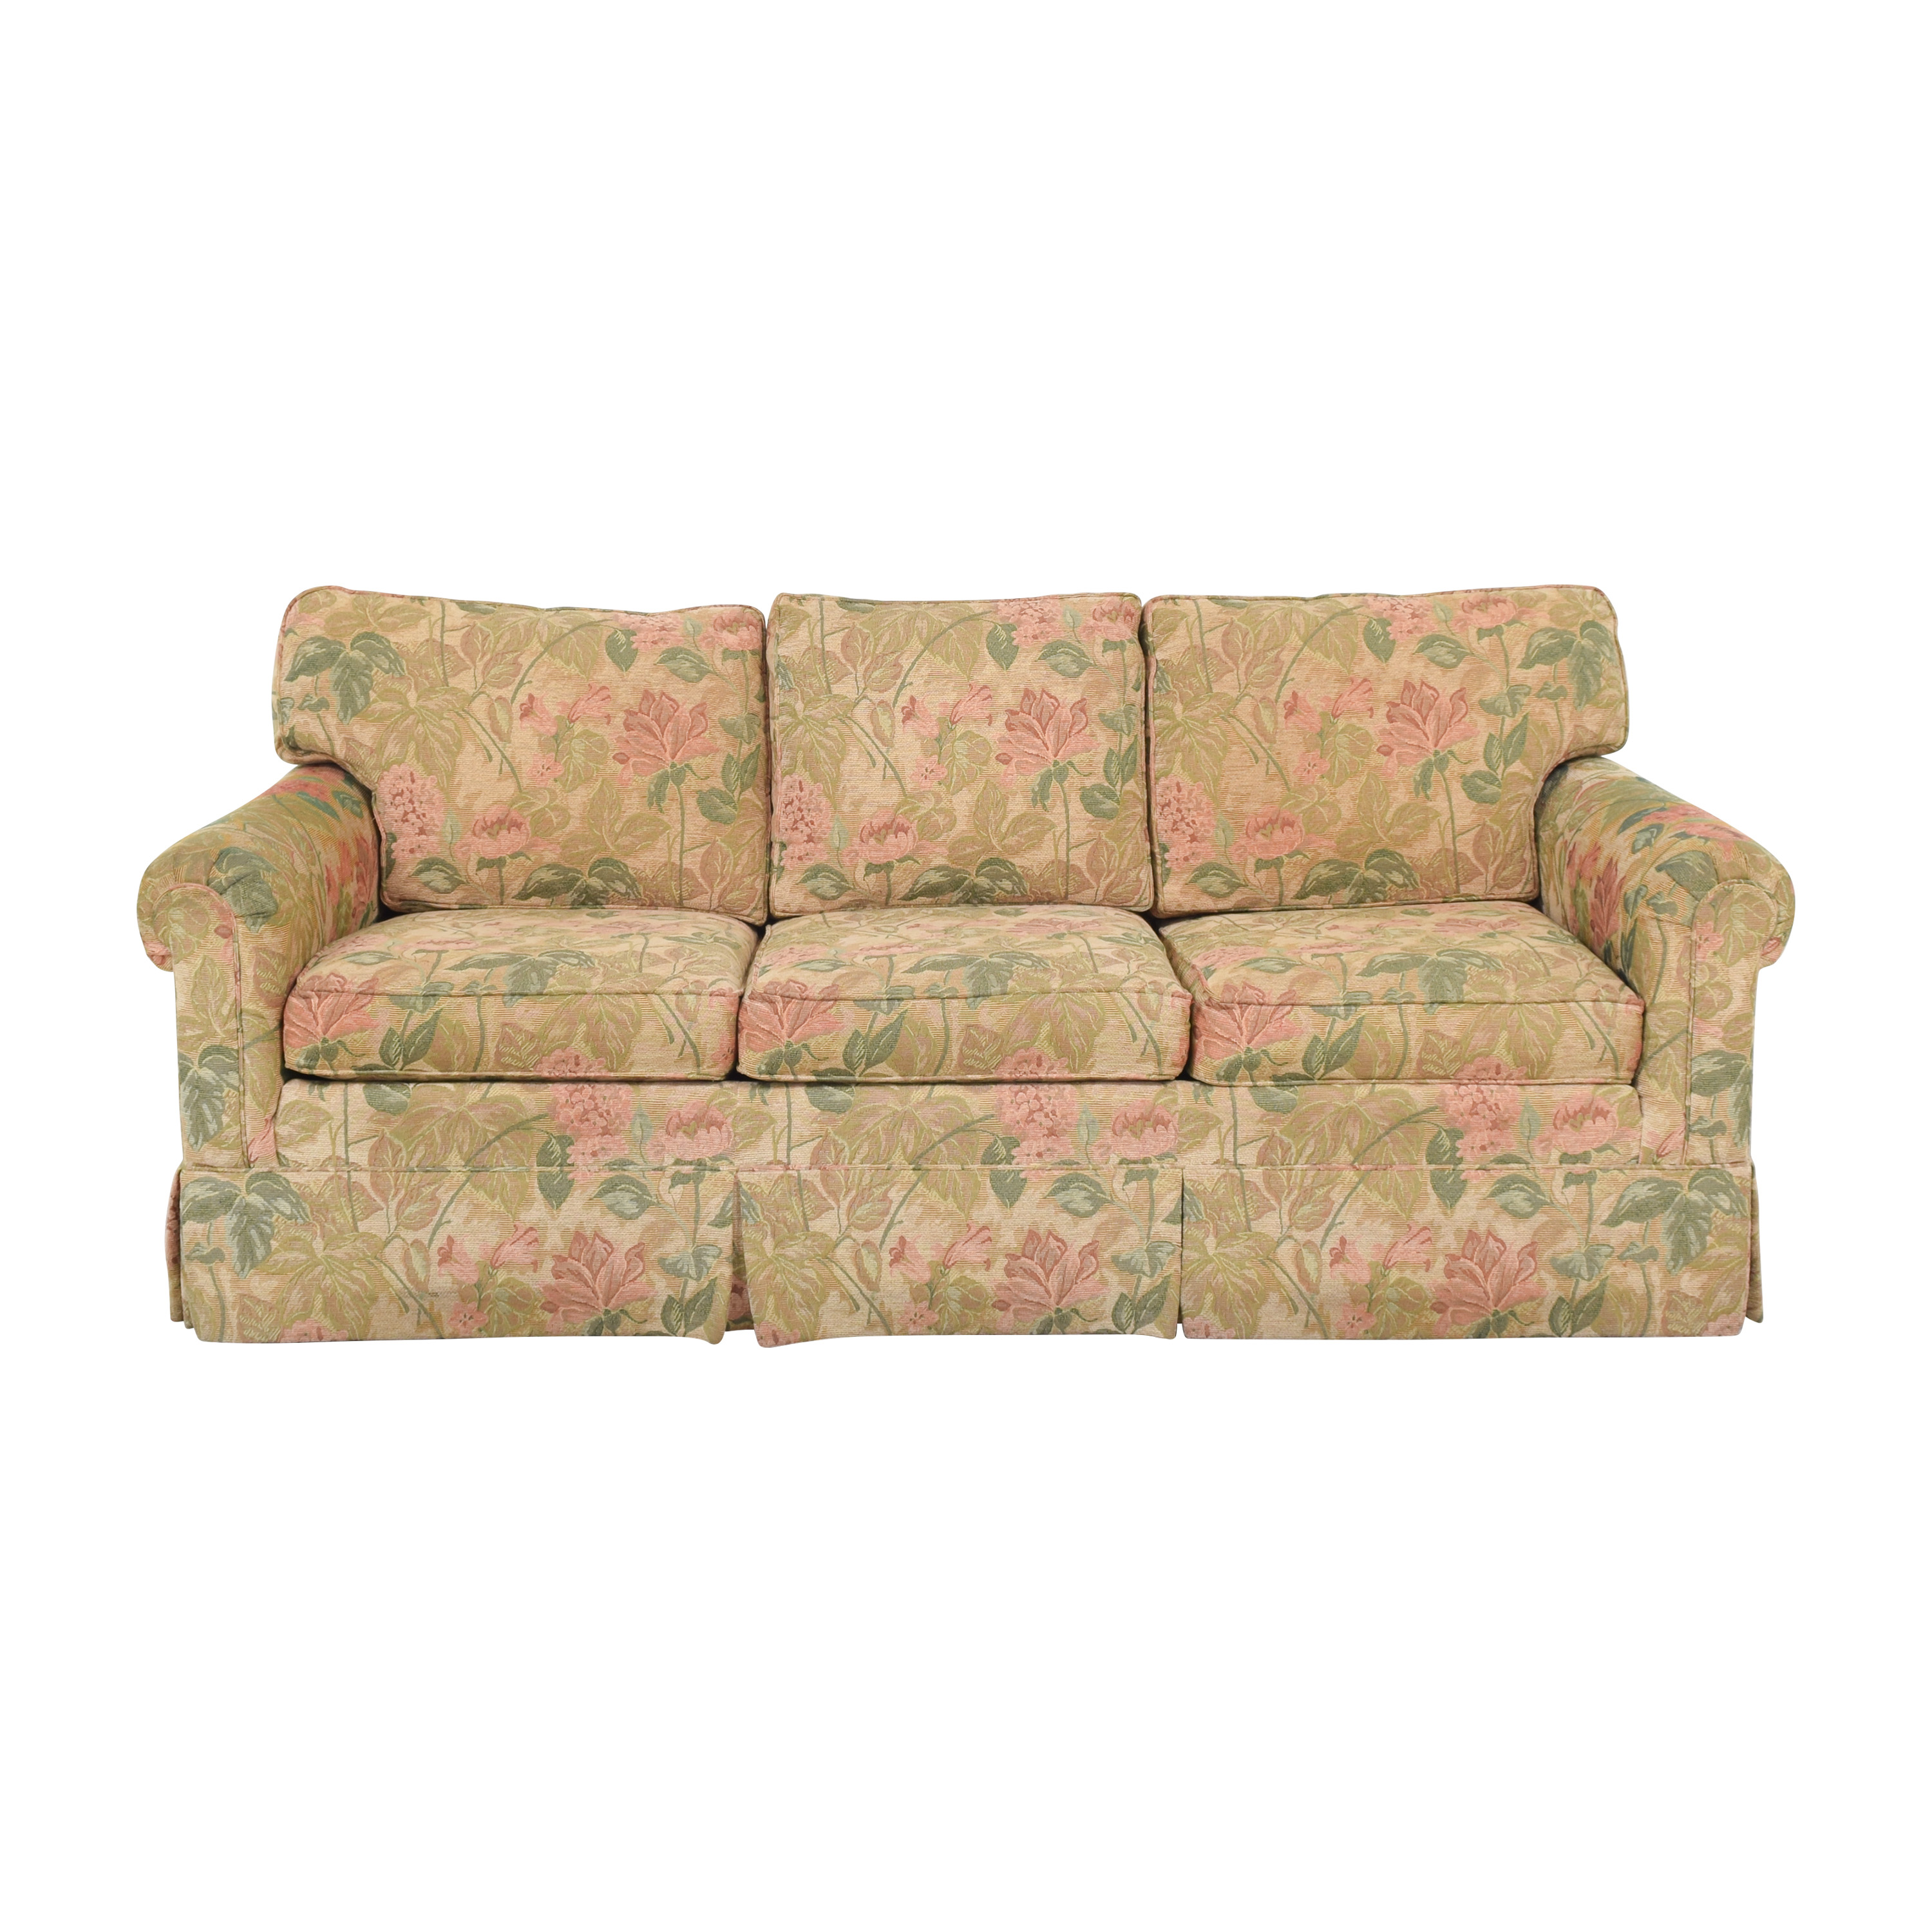 Ethan Allen Ethan Allen Floral Skirted Sofa nyc